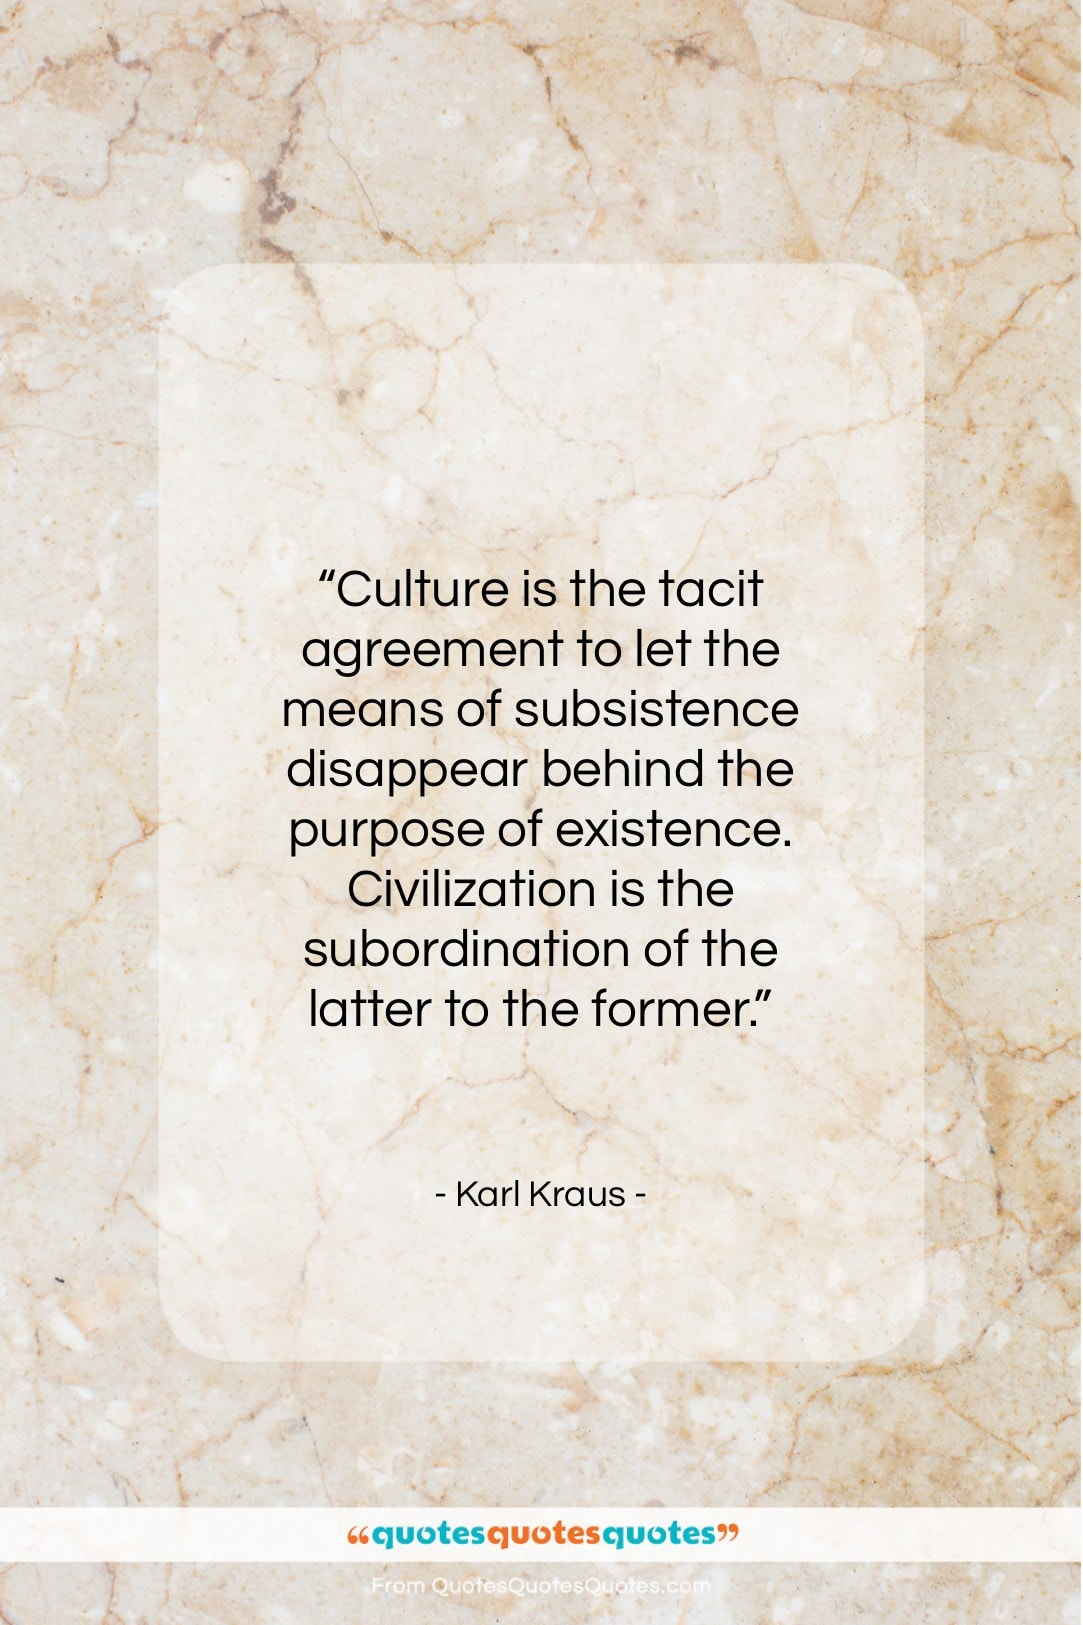 """Karl Kraus quote: """"Culture is the tacit agreement to let…""""- at QuotesQuotesQuotes.com"""